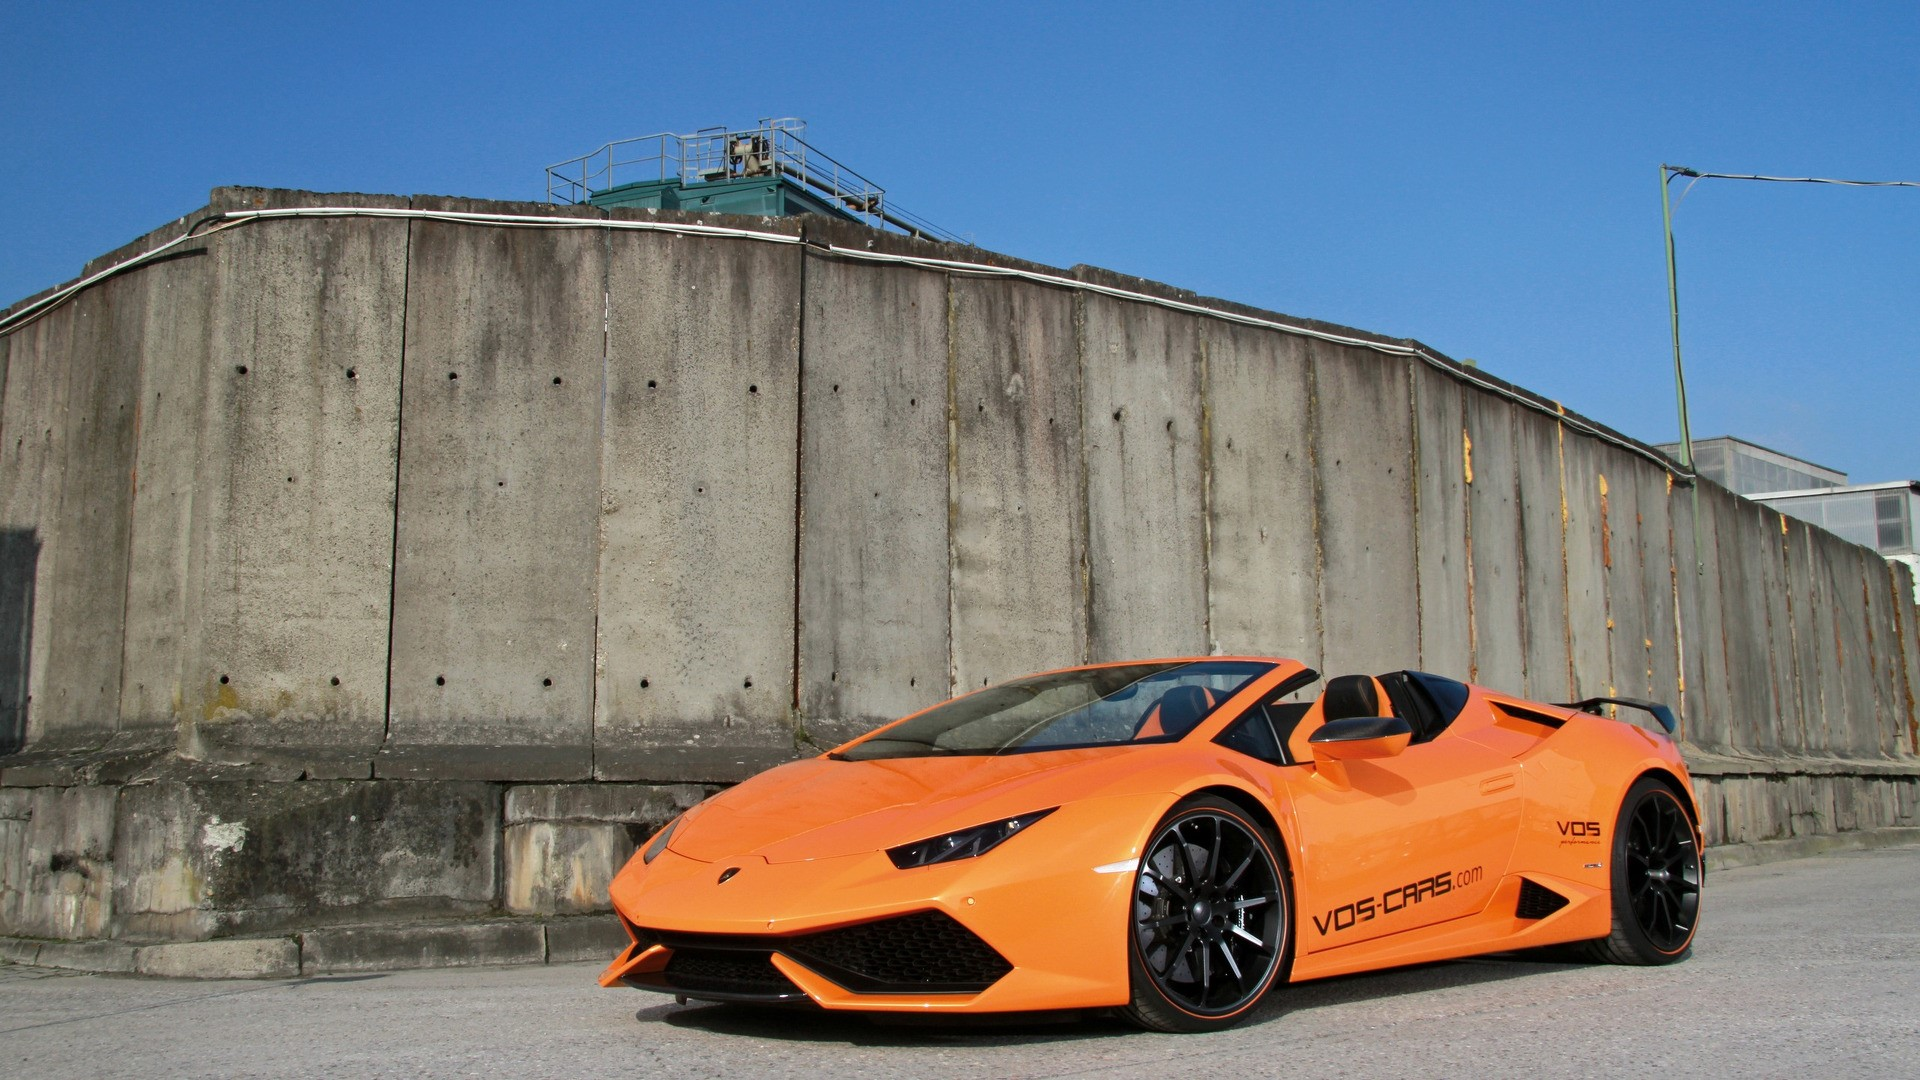 Lamborghini Huracan Spyder by Vision of Speed (1)